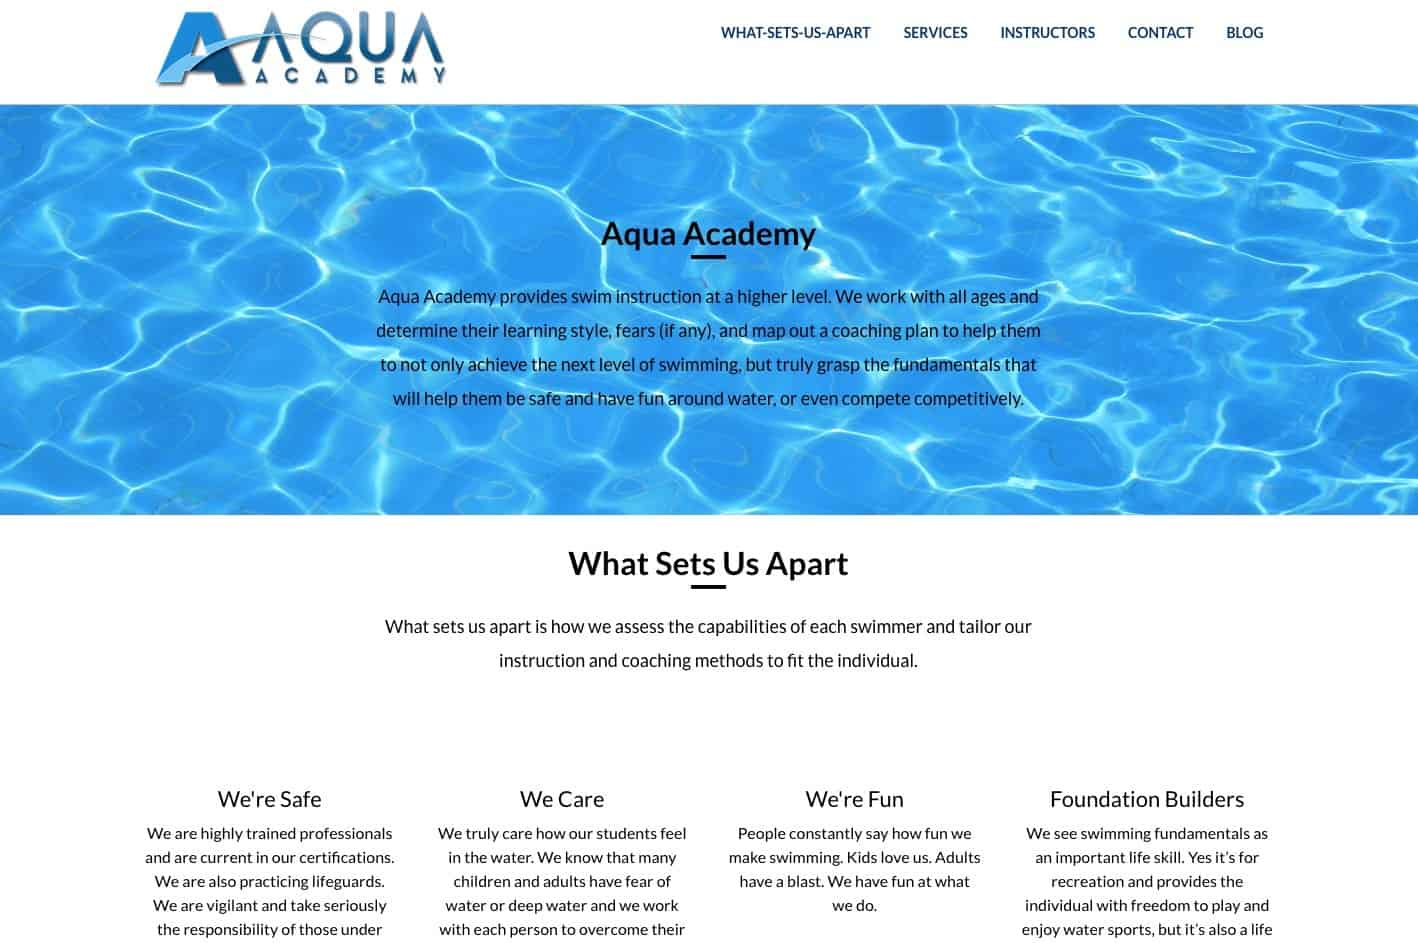 AquaAcademy Website Sample